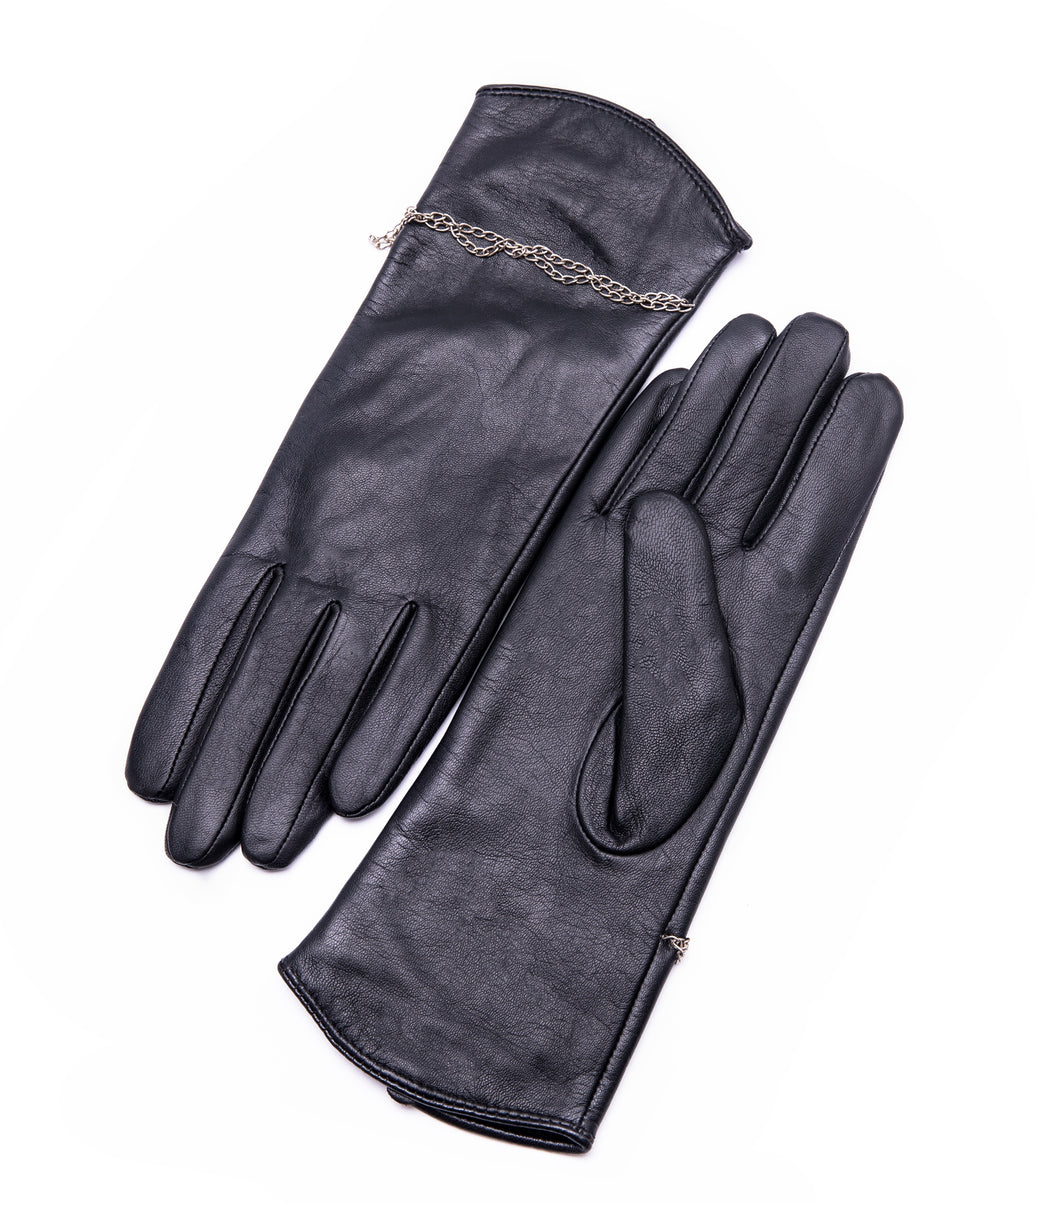 YISEVEN Women's Winter Touchscreen Genuine Lambskin Leather Gloves